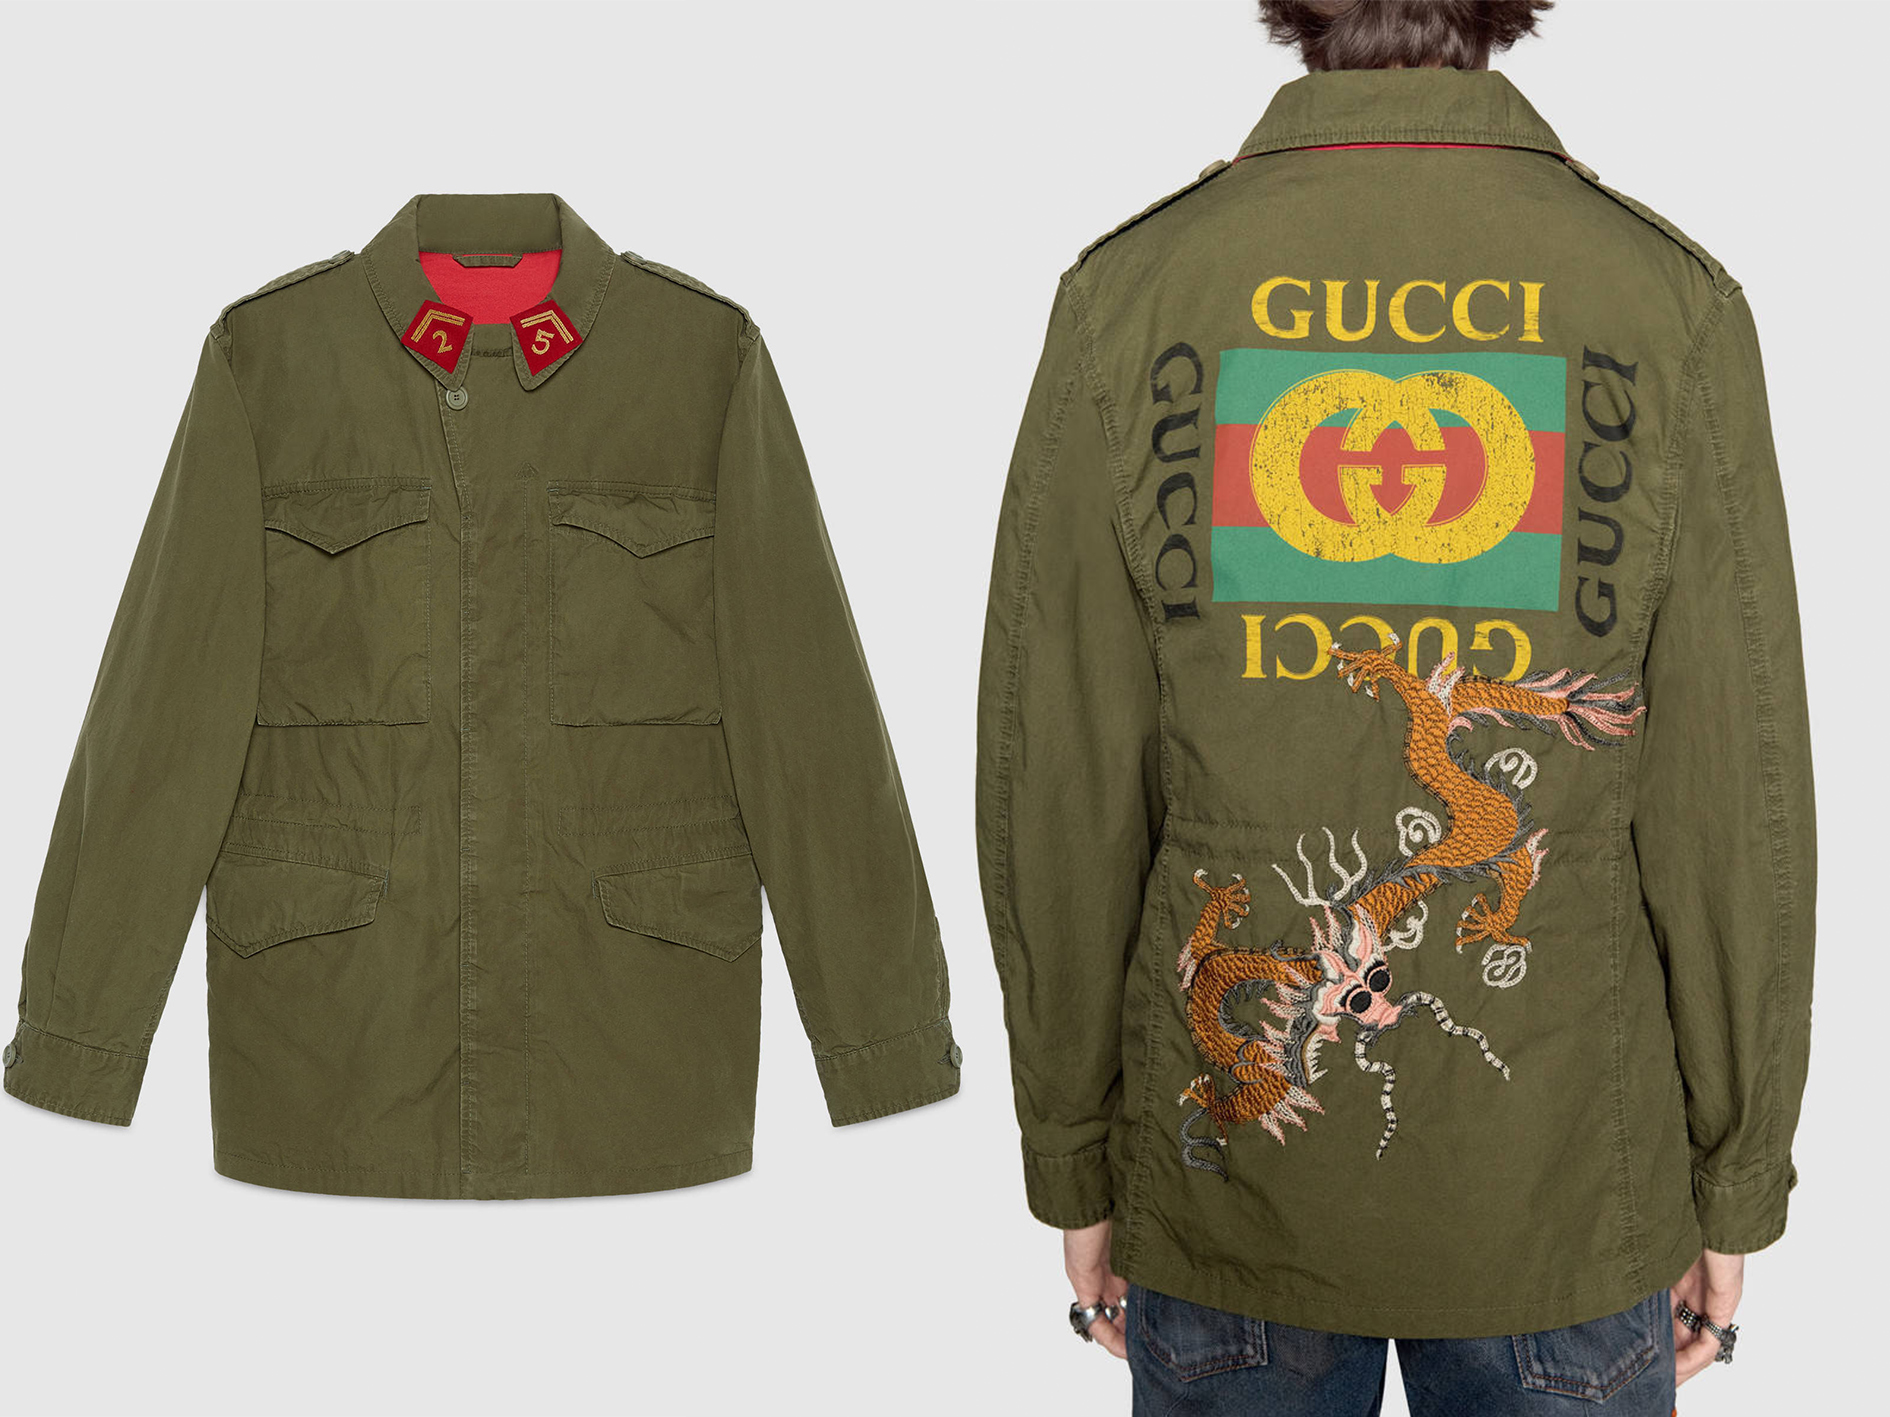 Gucci is collaborating with Angelica Hicks for a T-shirt collection